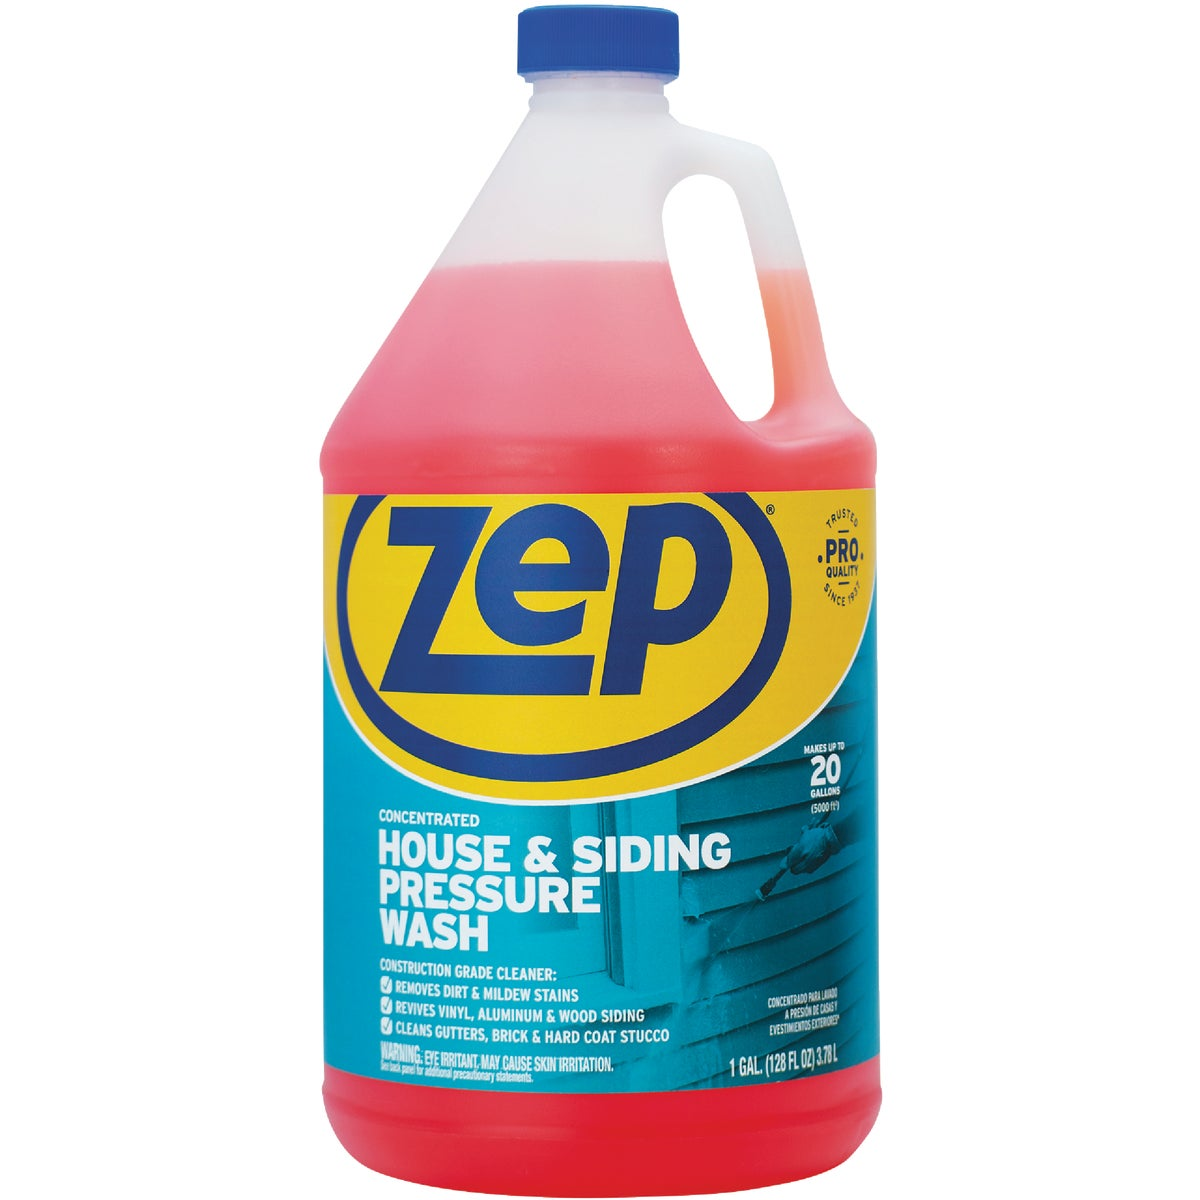 HOUSE AND SIDING WASH